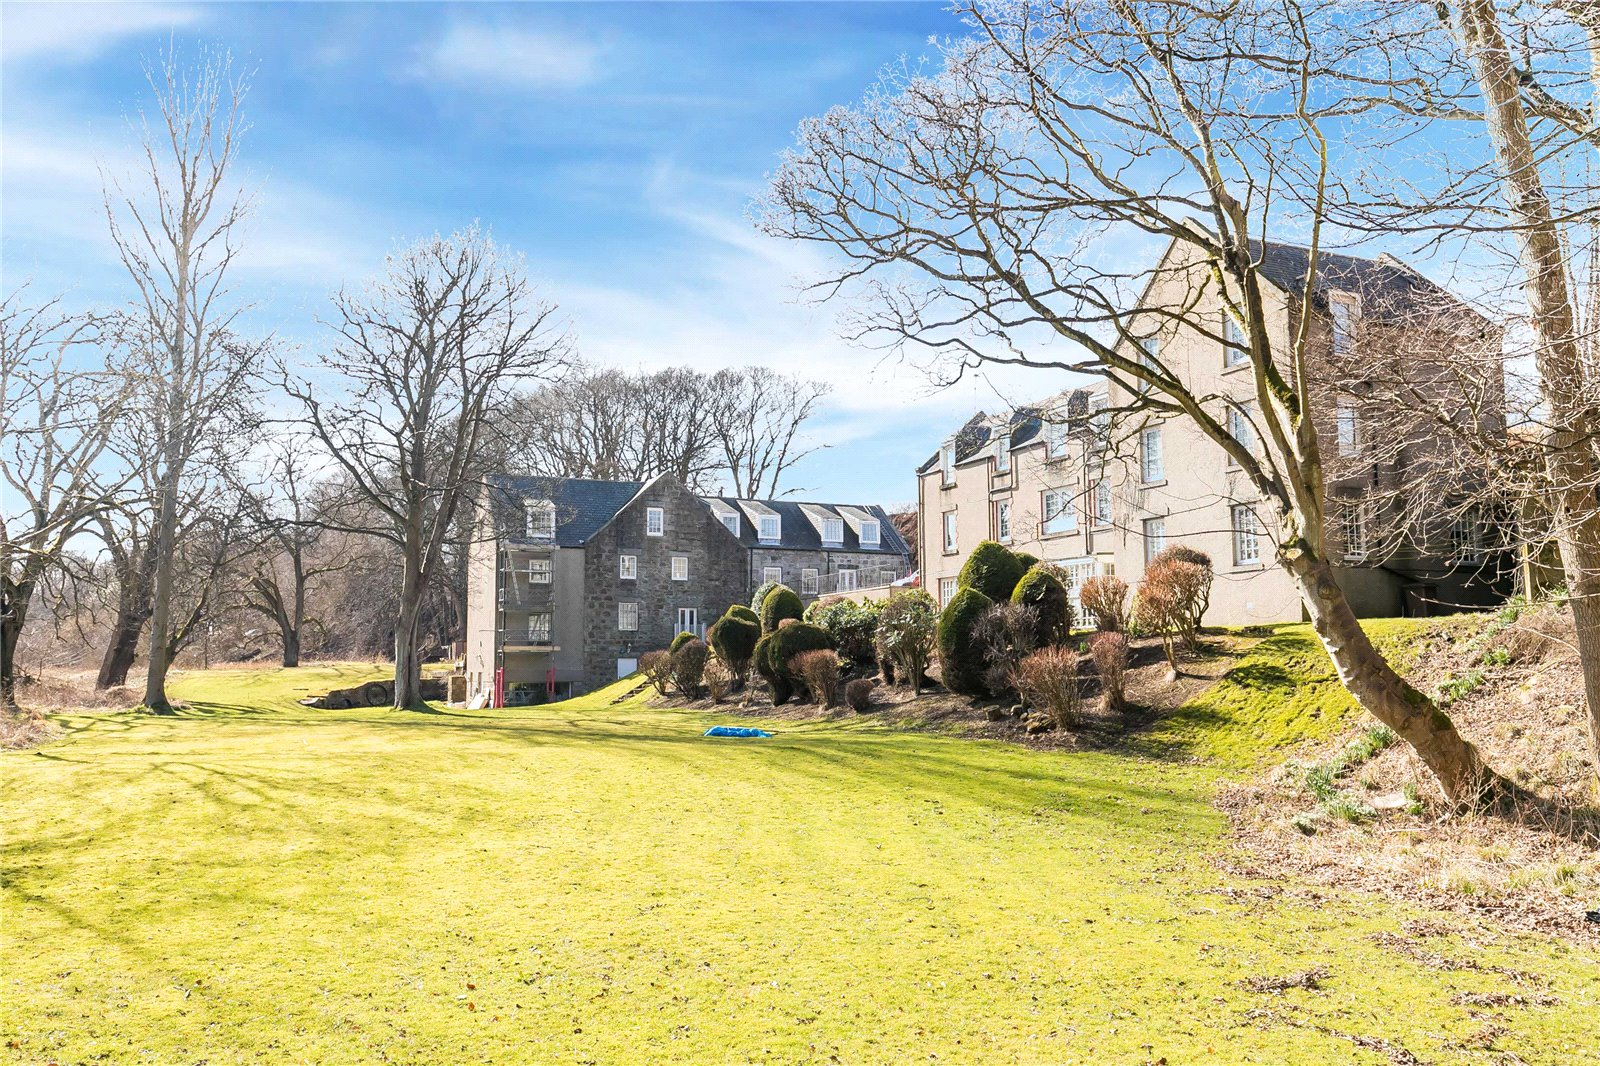 B listed building in a beautiful secluded setting